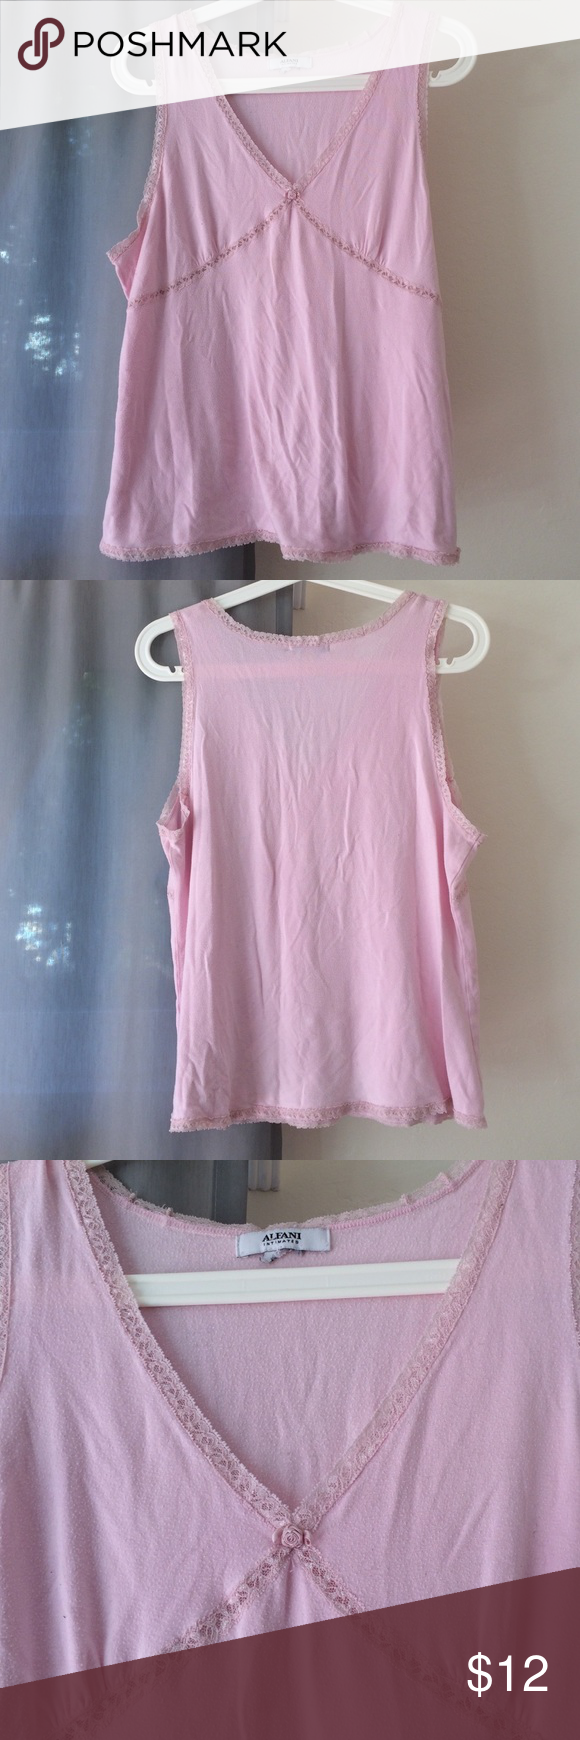 vintage pj top super cute and comfy pink pj top. has pink lace trim and a rose at the bottom of the v-neck. good condition. Alfani Intimates & Sleepwear Pajamas